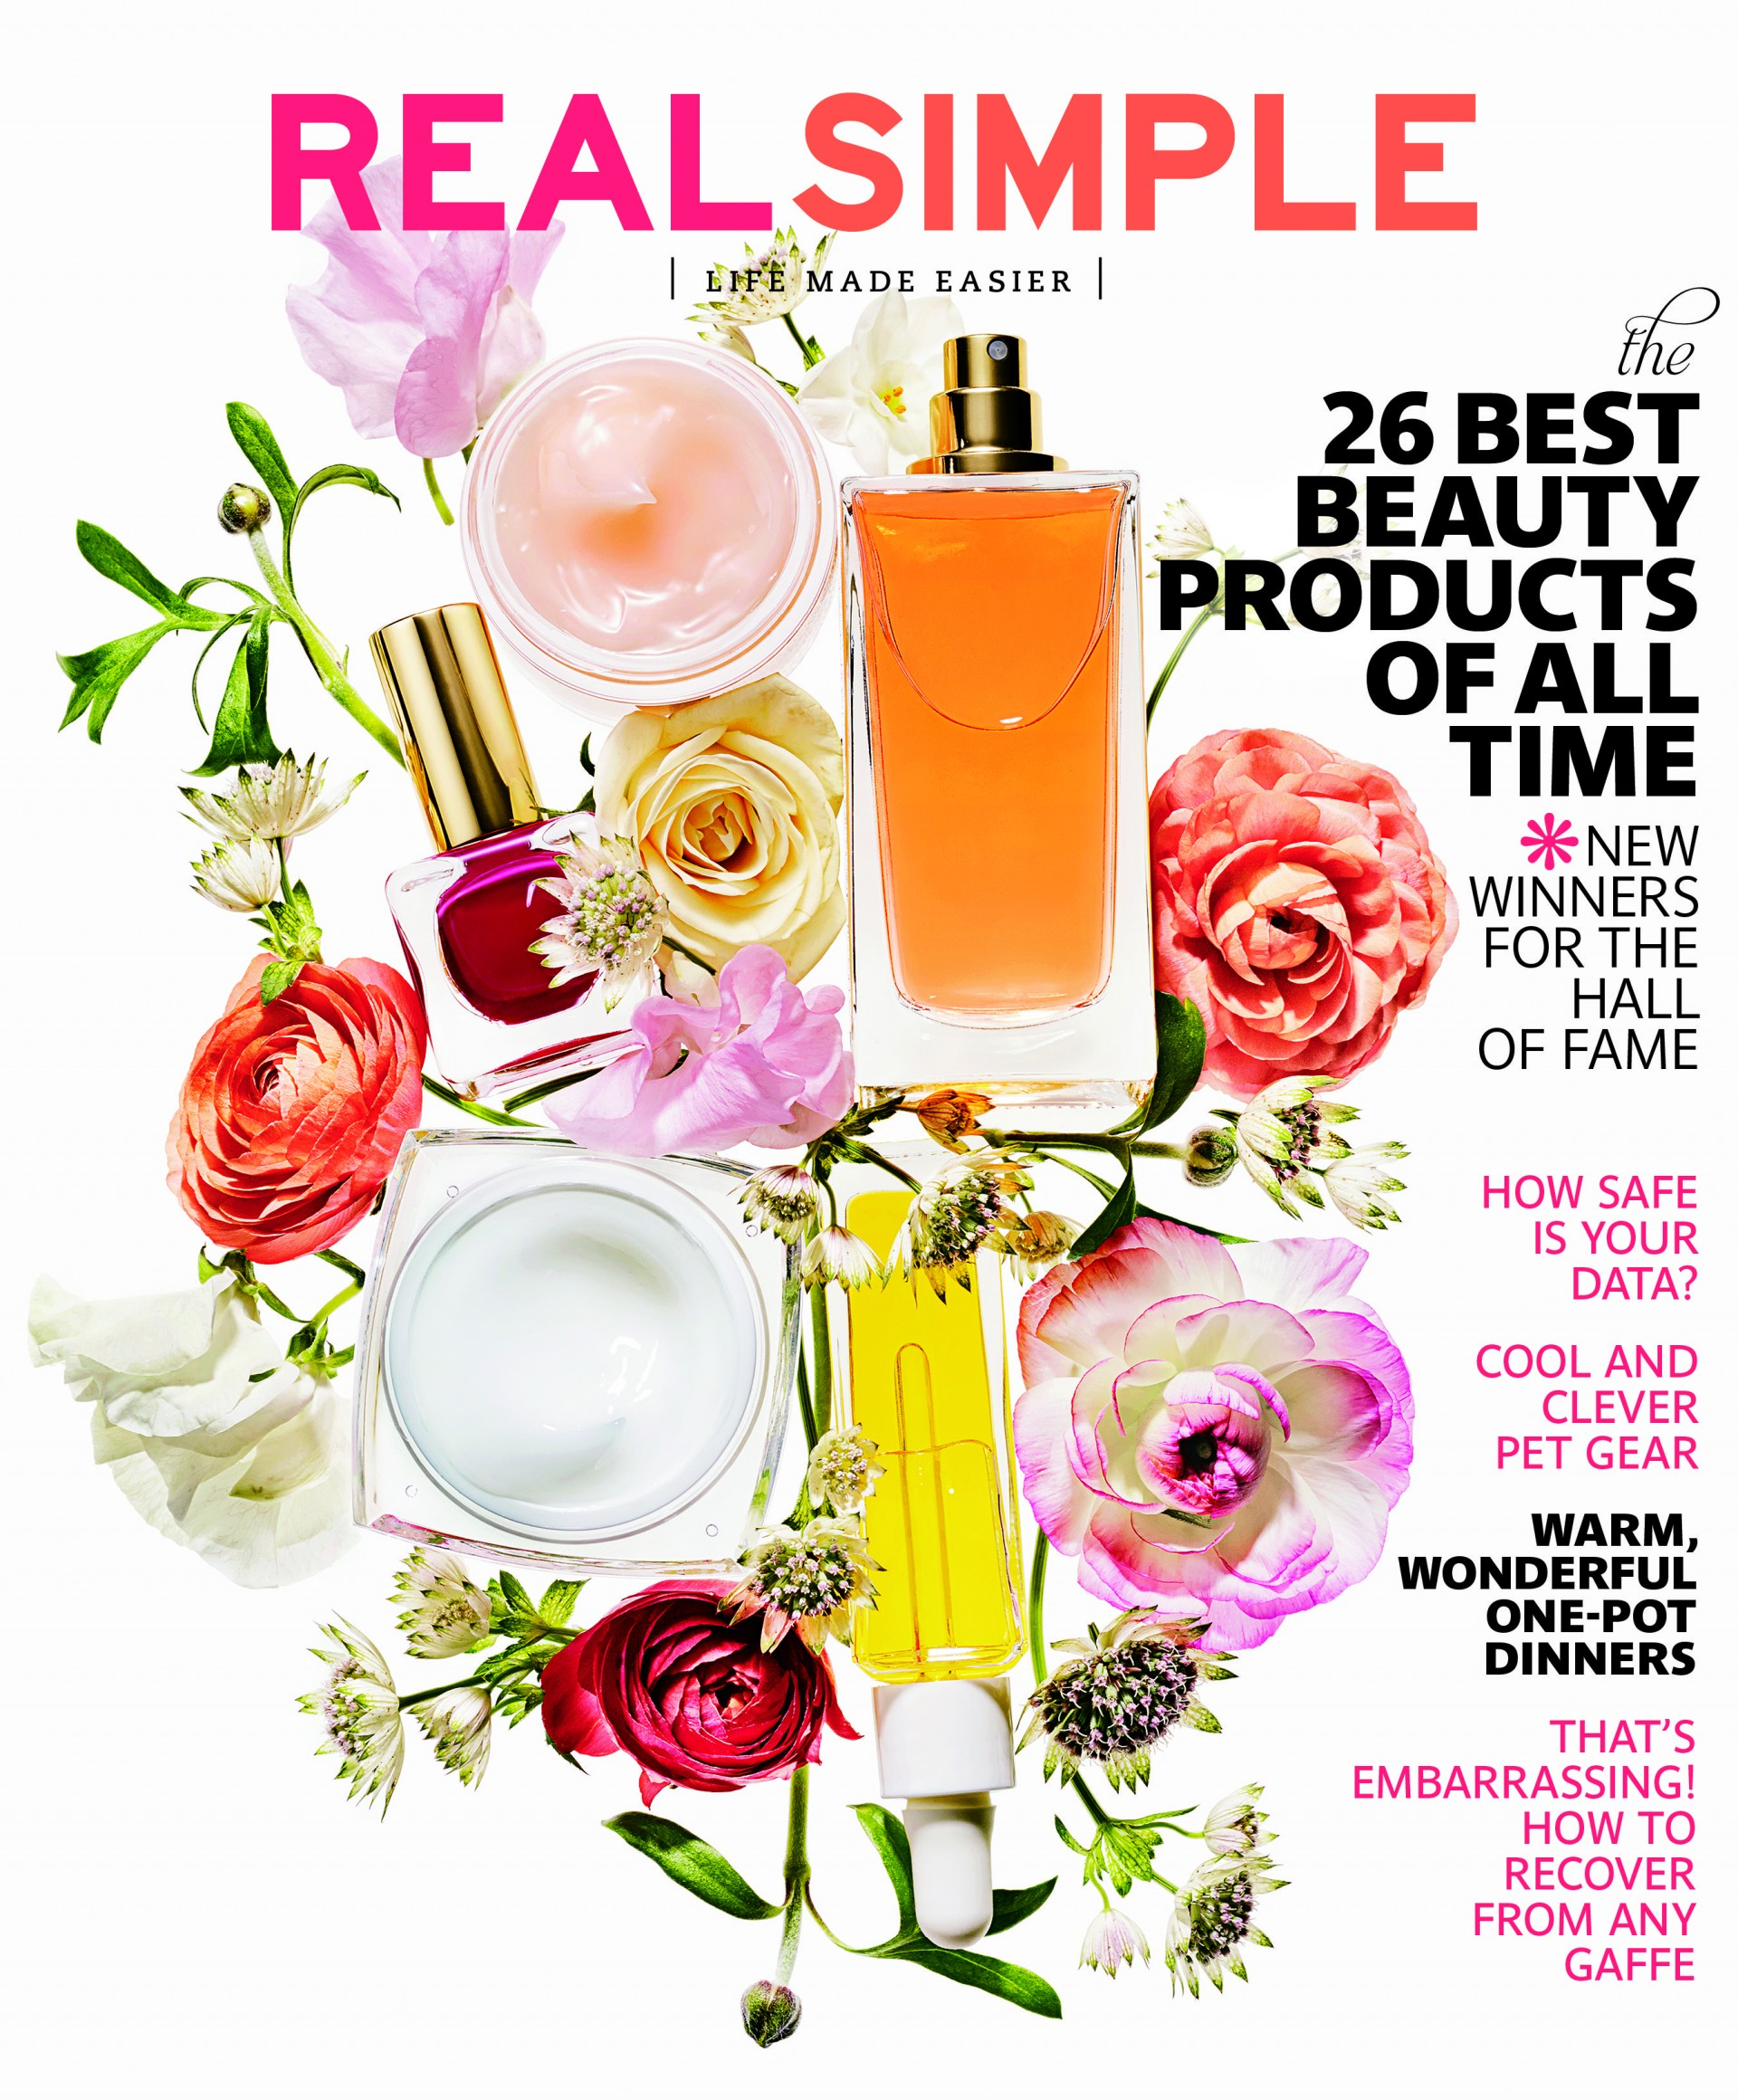 022 Real Simple Essay Contest Example Frightening Magazine Writing Life 2017 1920